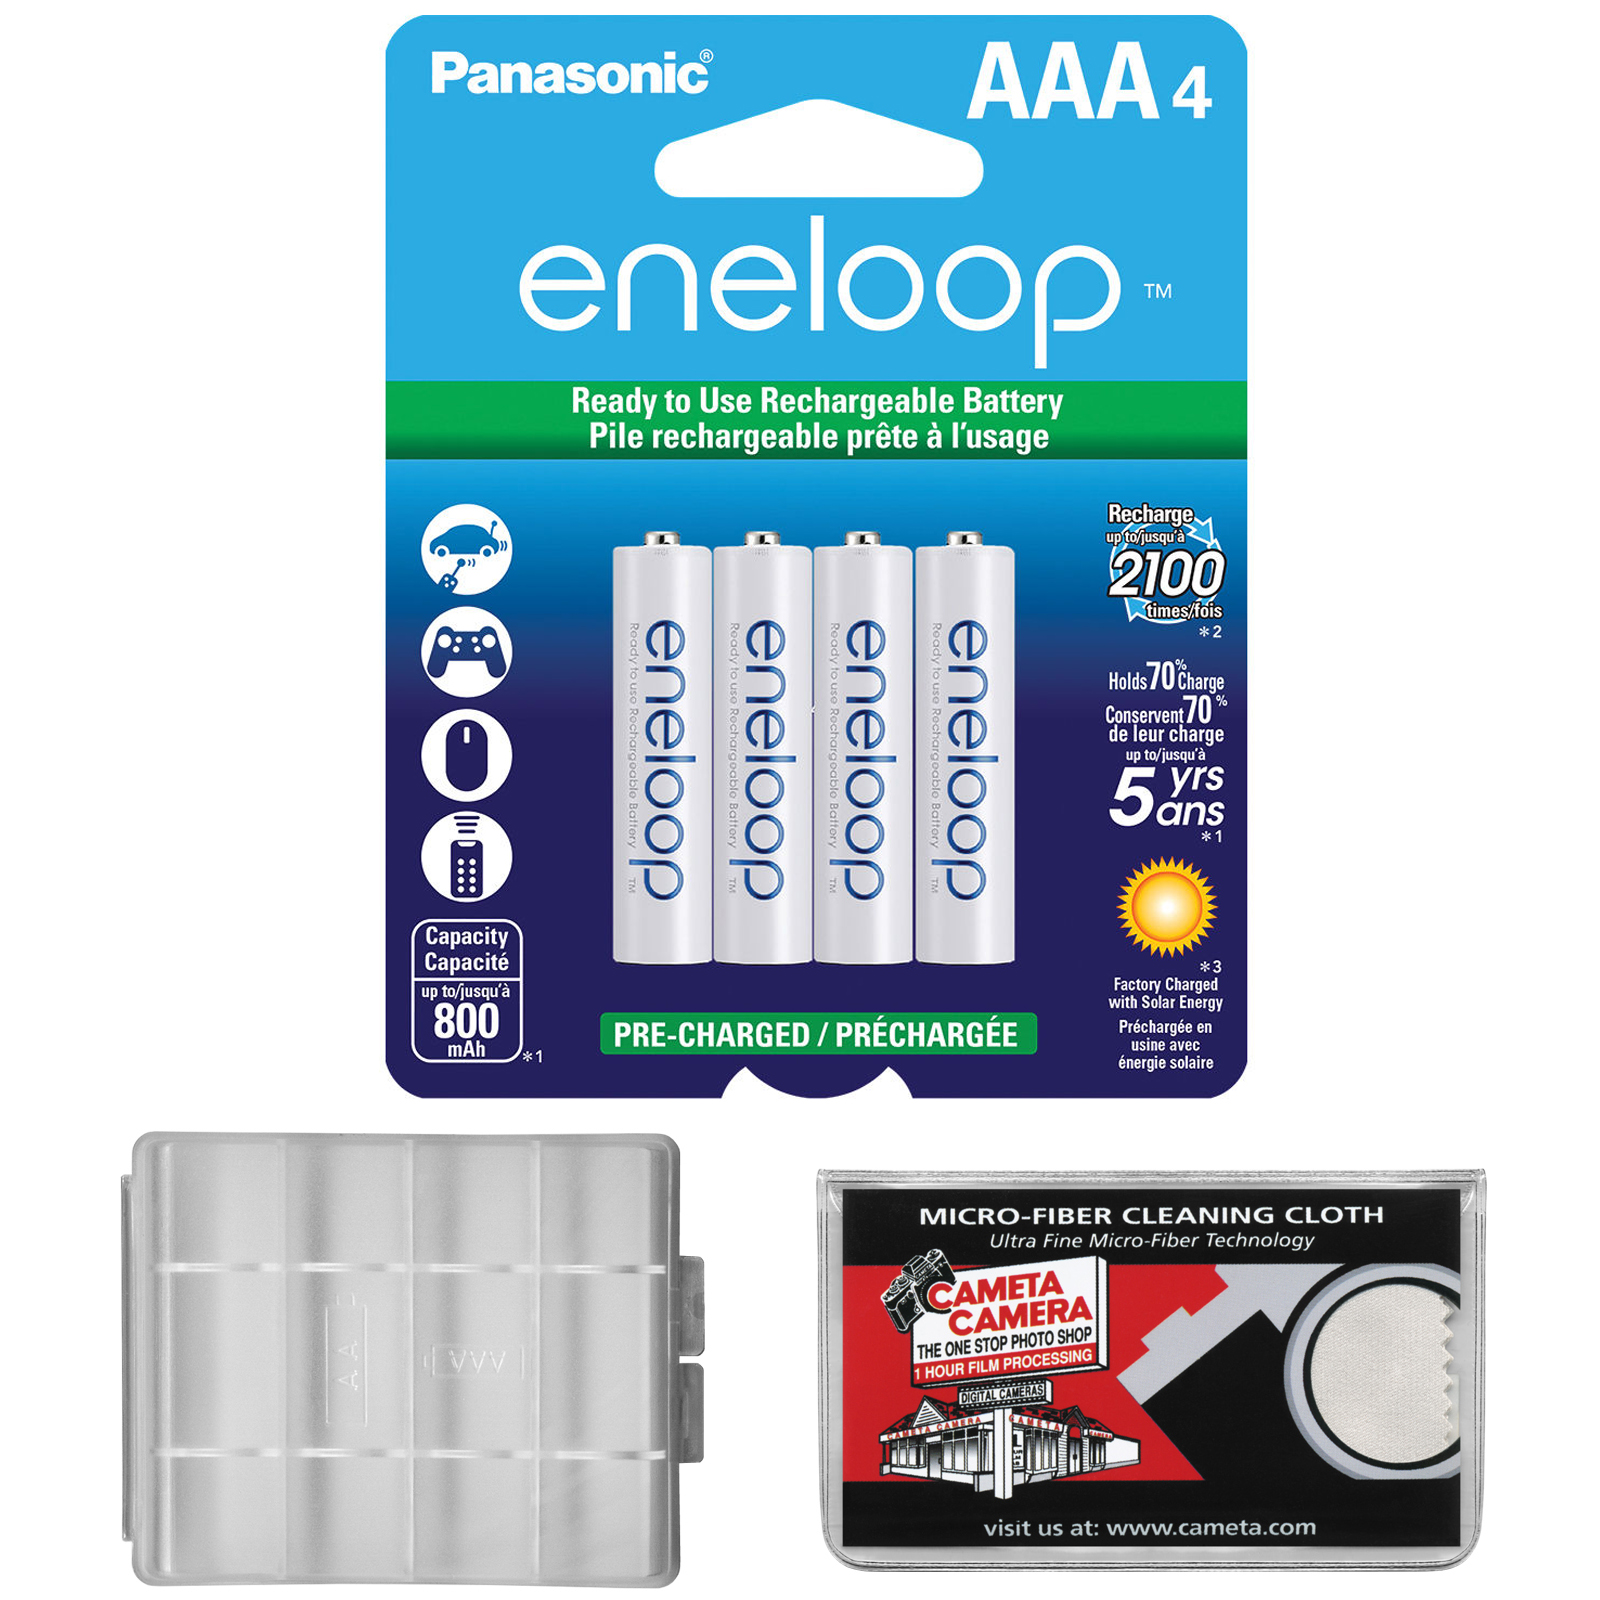 Panasonic eneloop (4) AAA 800mAh Pre-Charged NiMH Rechargeable Batteries with AAA Battery Case + Microfiber Cleaning Cloth